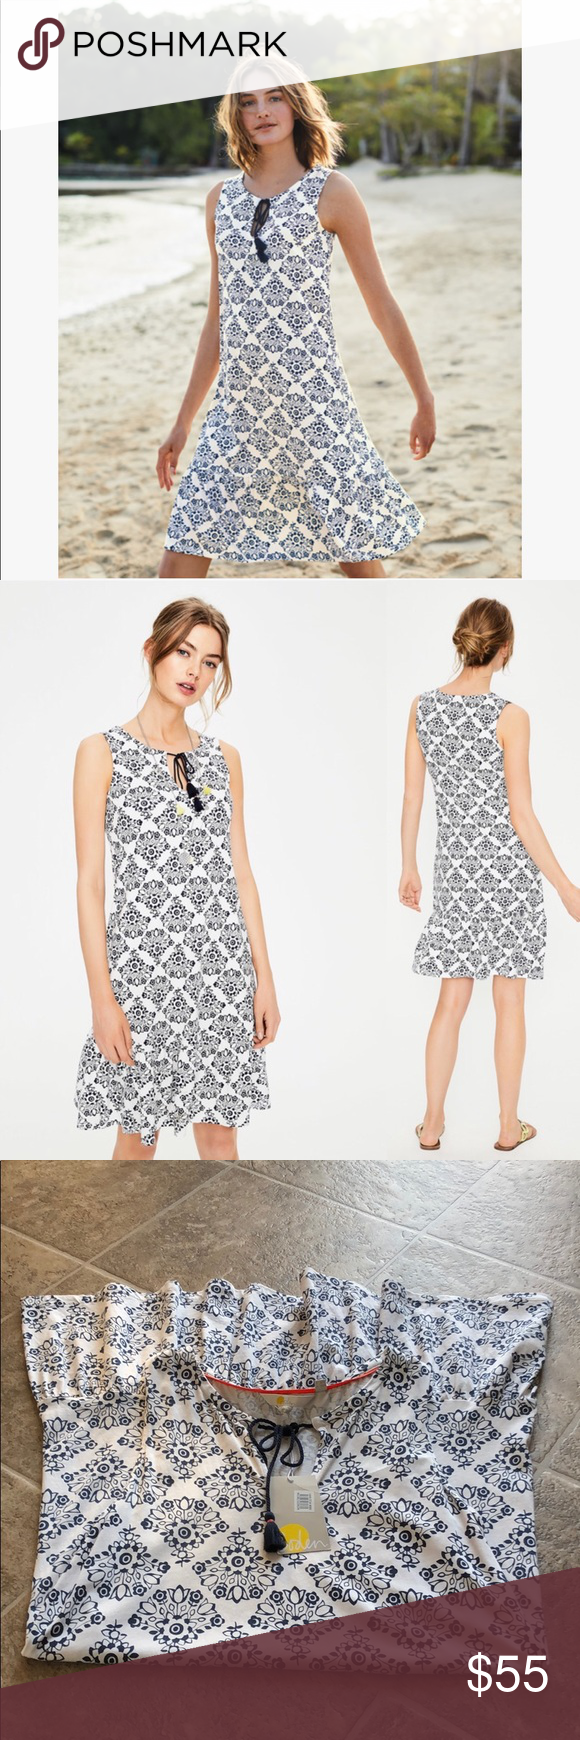 4835d5ecfb9 Boden NWT Arabella Jersey Dress White Navy 52% modal 48% cotton Machine  washable Relaxed fit Length finishes above knee Sleeveless Soft cotton  blend jersey ...